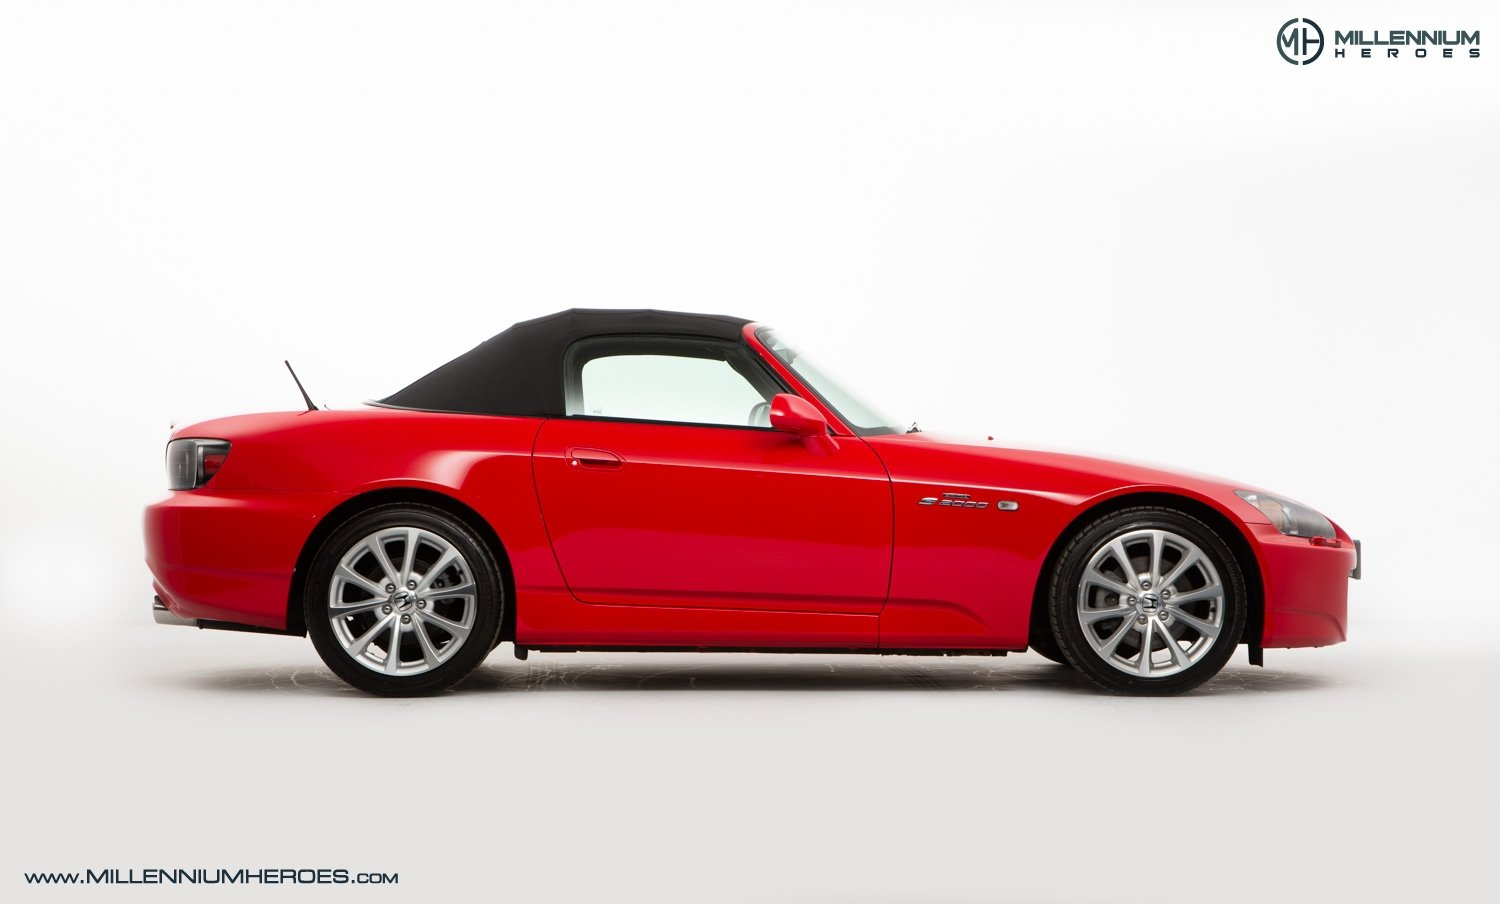 2007 HONDA S2000  For Sale (picture 6 of 21)